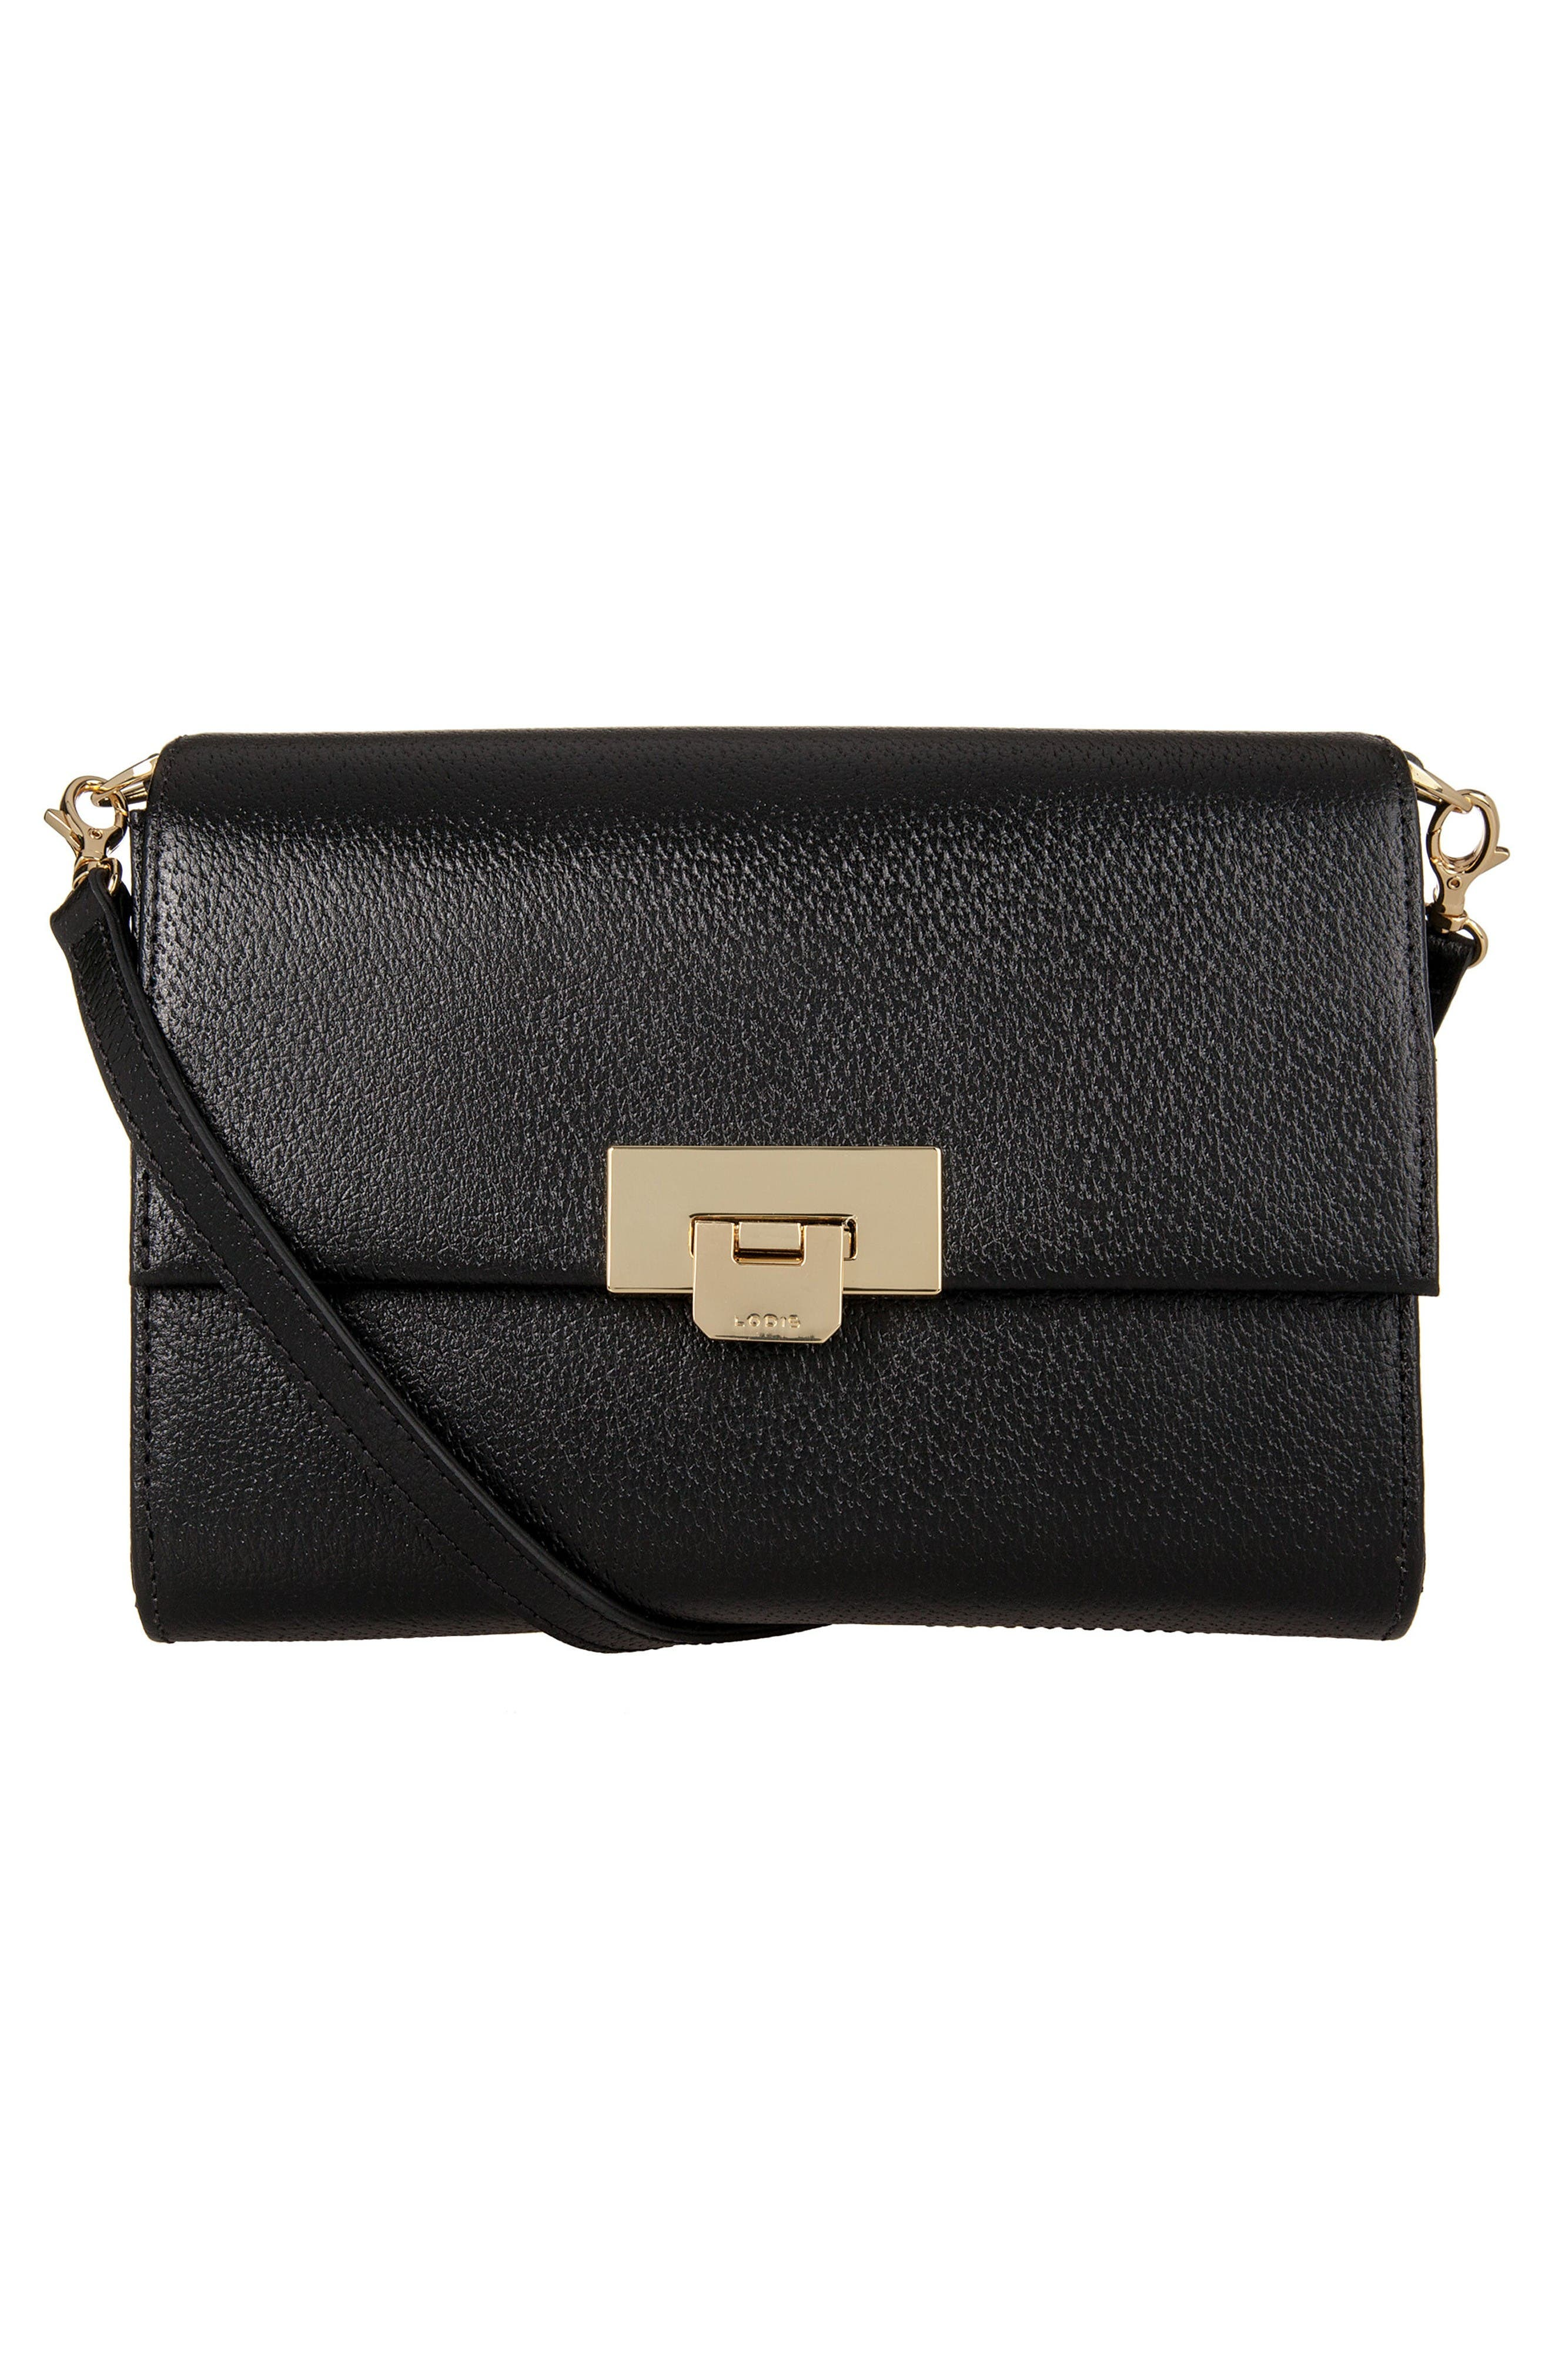 Alternate Image 1 Selected - LODIS Stephanie Under Lock & Key - Small Eden Leather Crossbody Bag